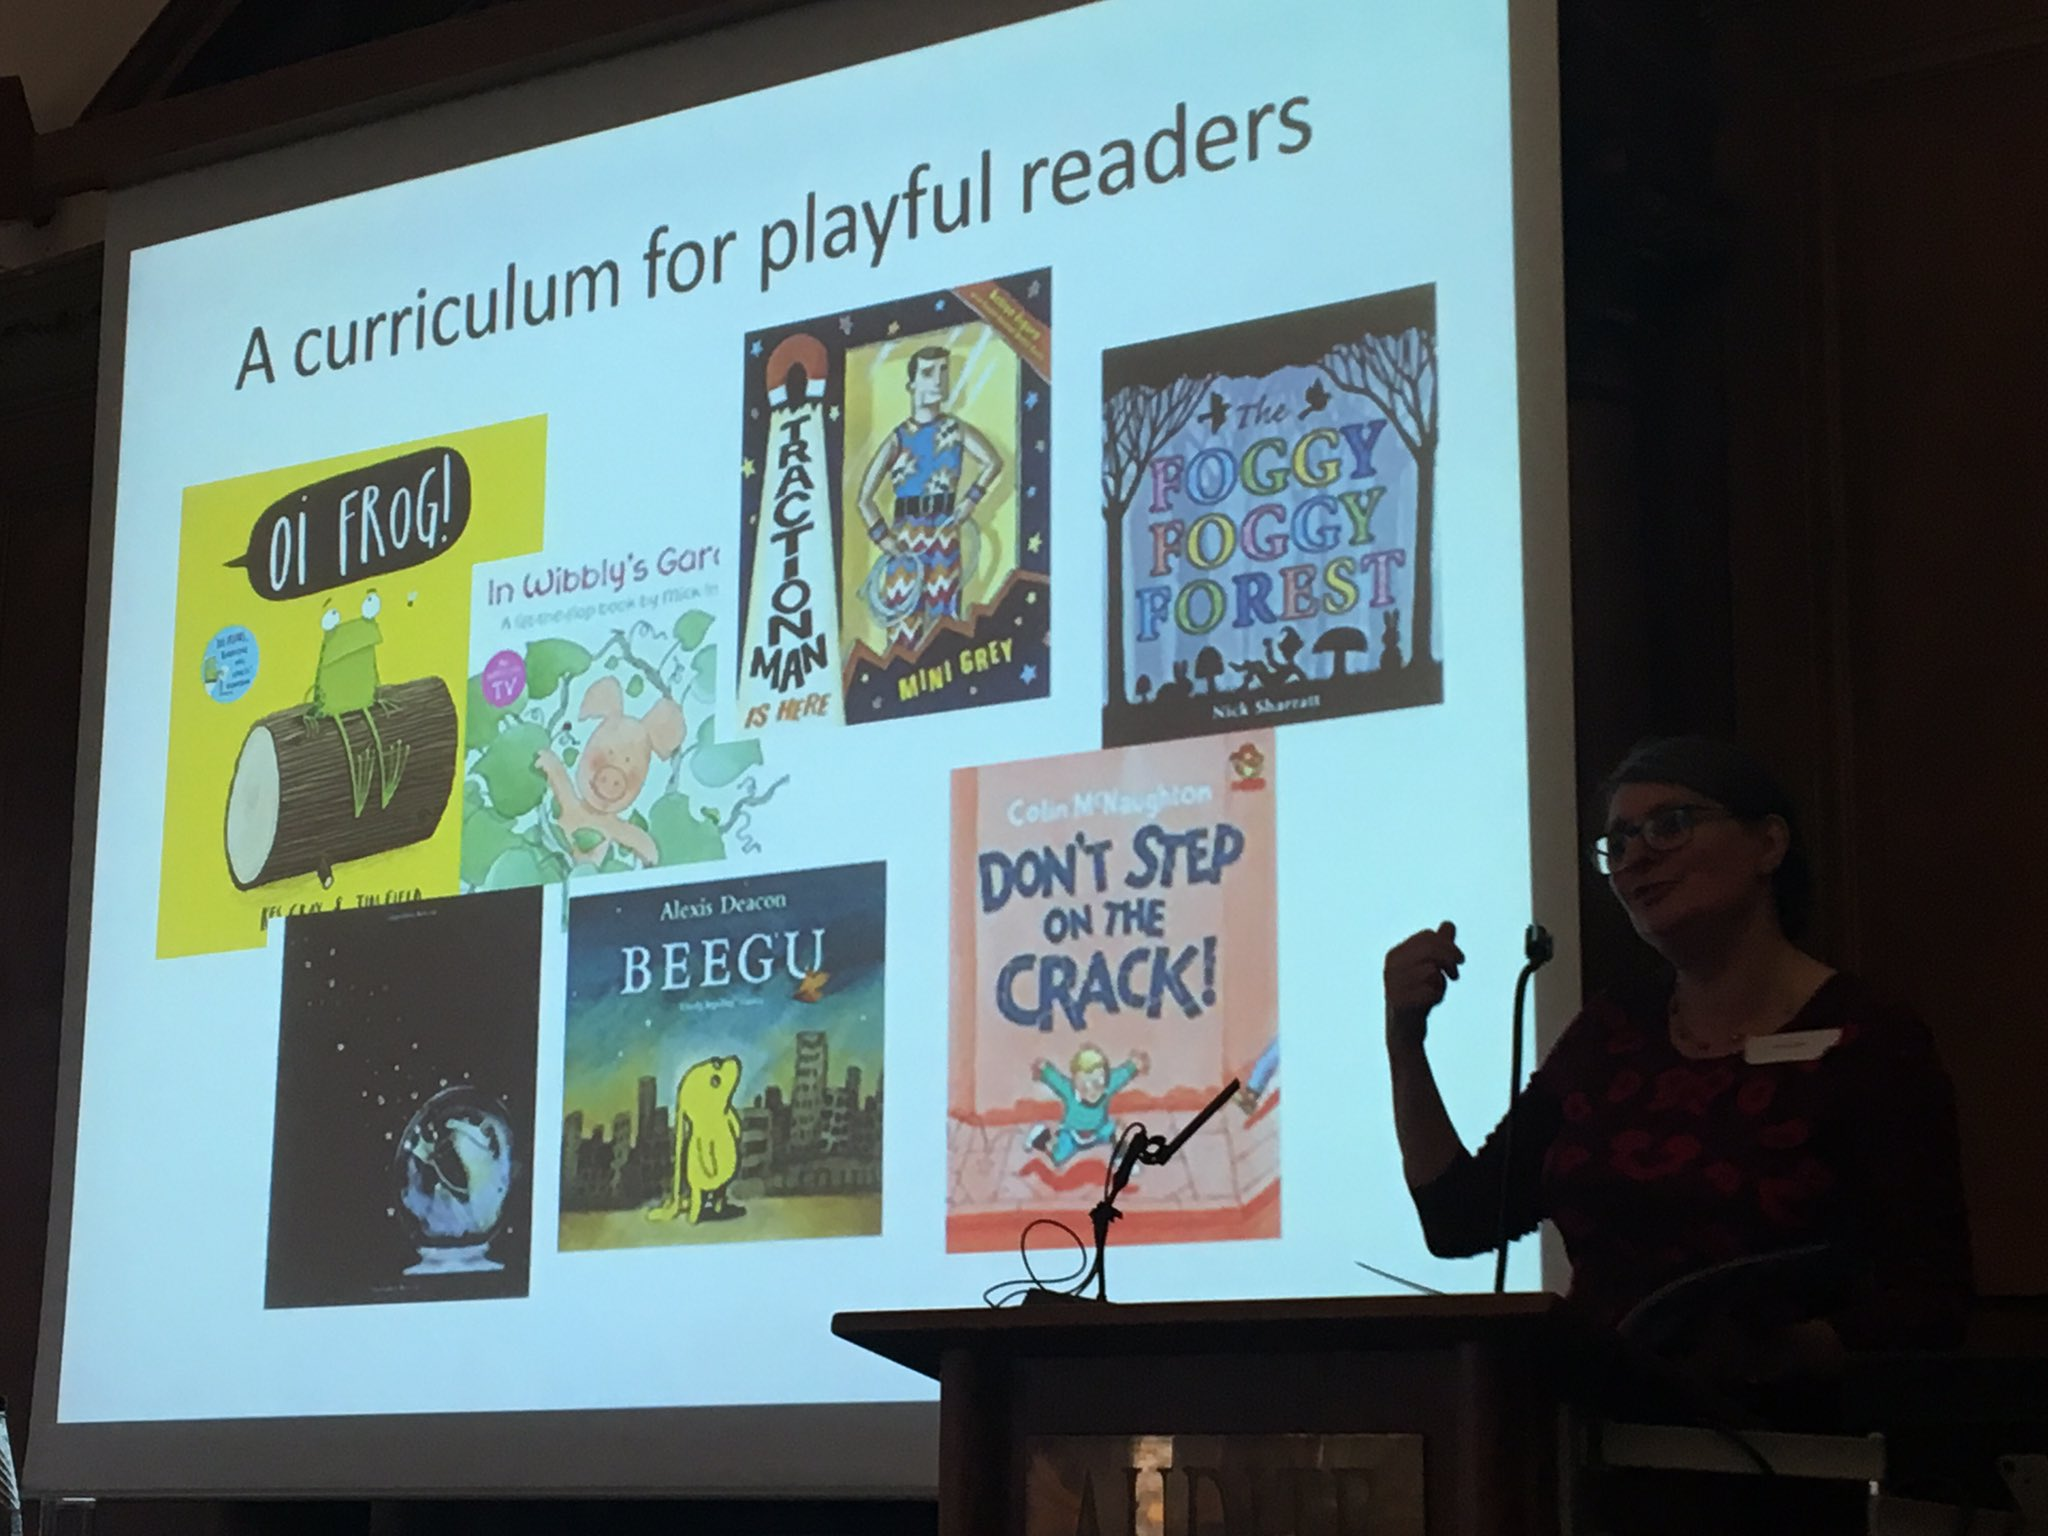 Vivienne Smith reading to us - a playful curriculum #IBBYPictures https://t.co/dMzlRHIcYX